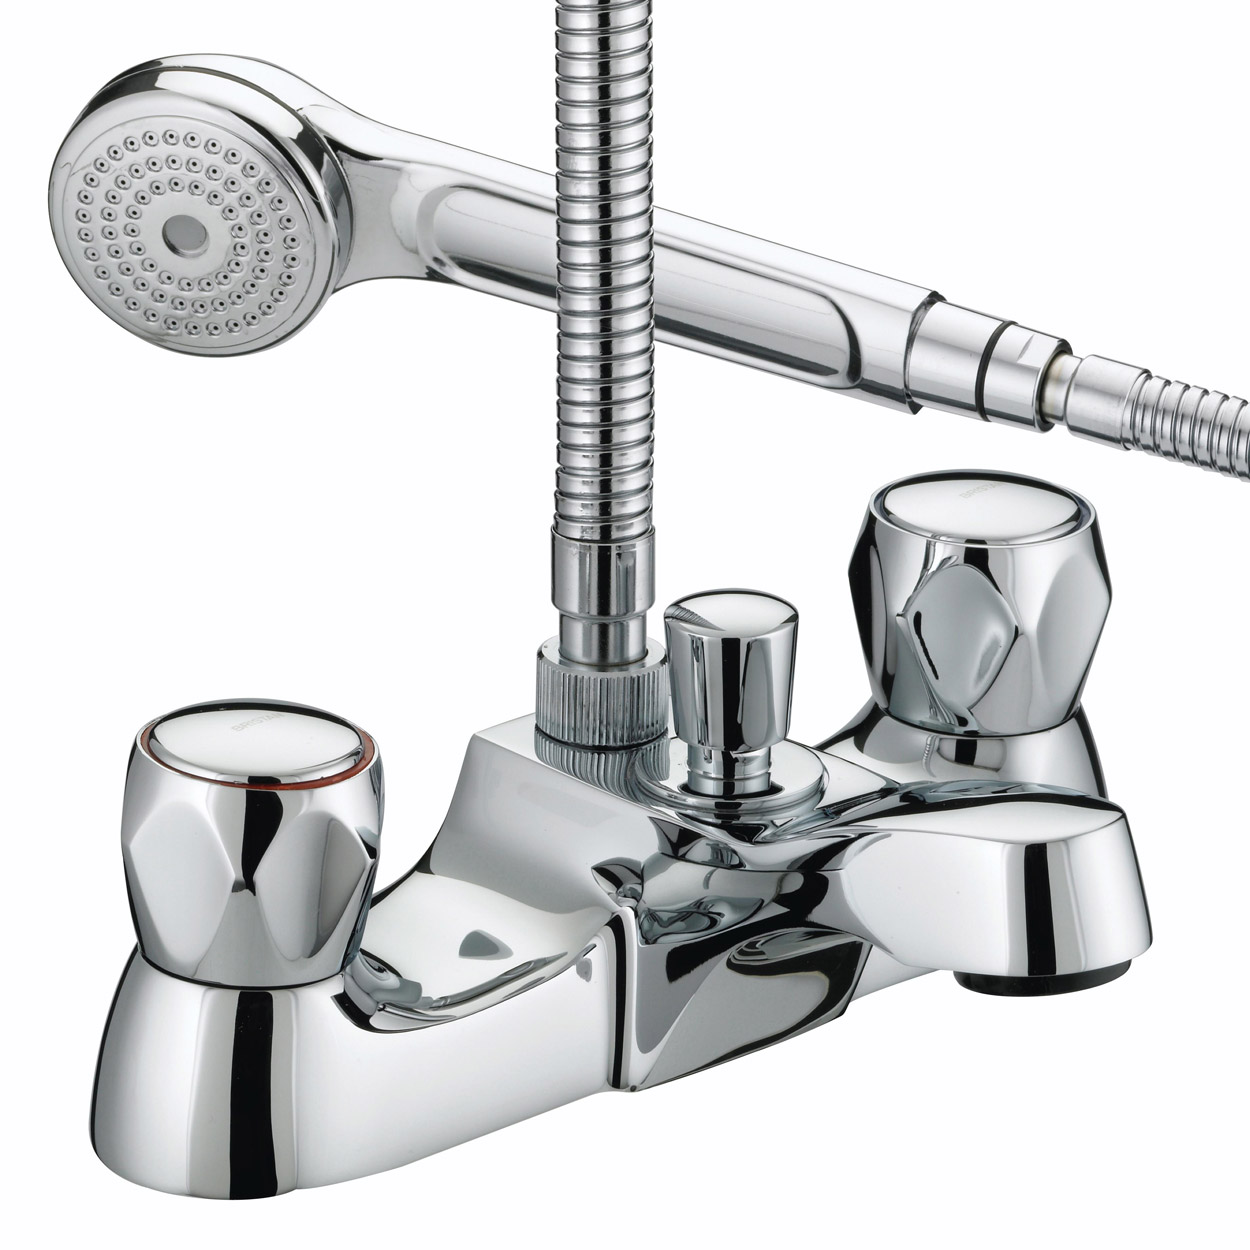 Bath filler tap and shower set